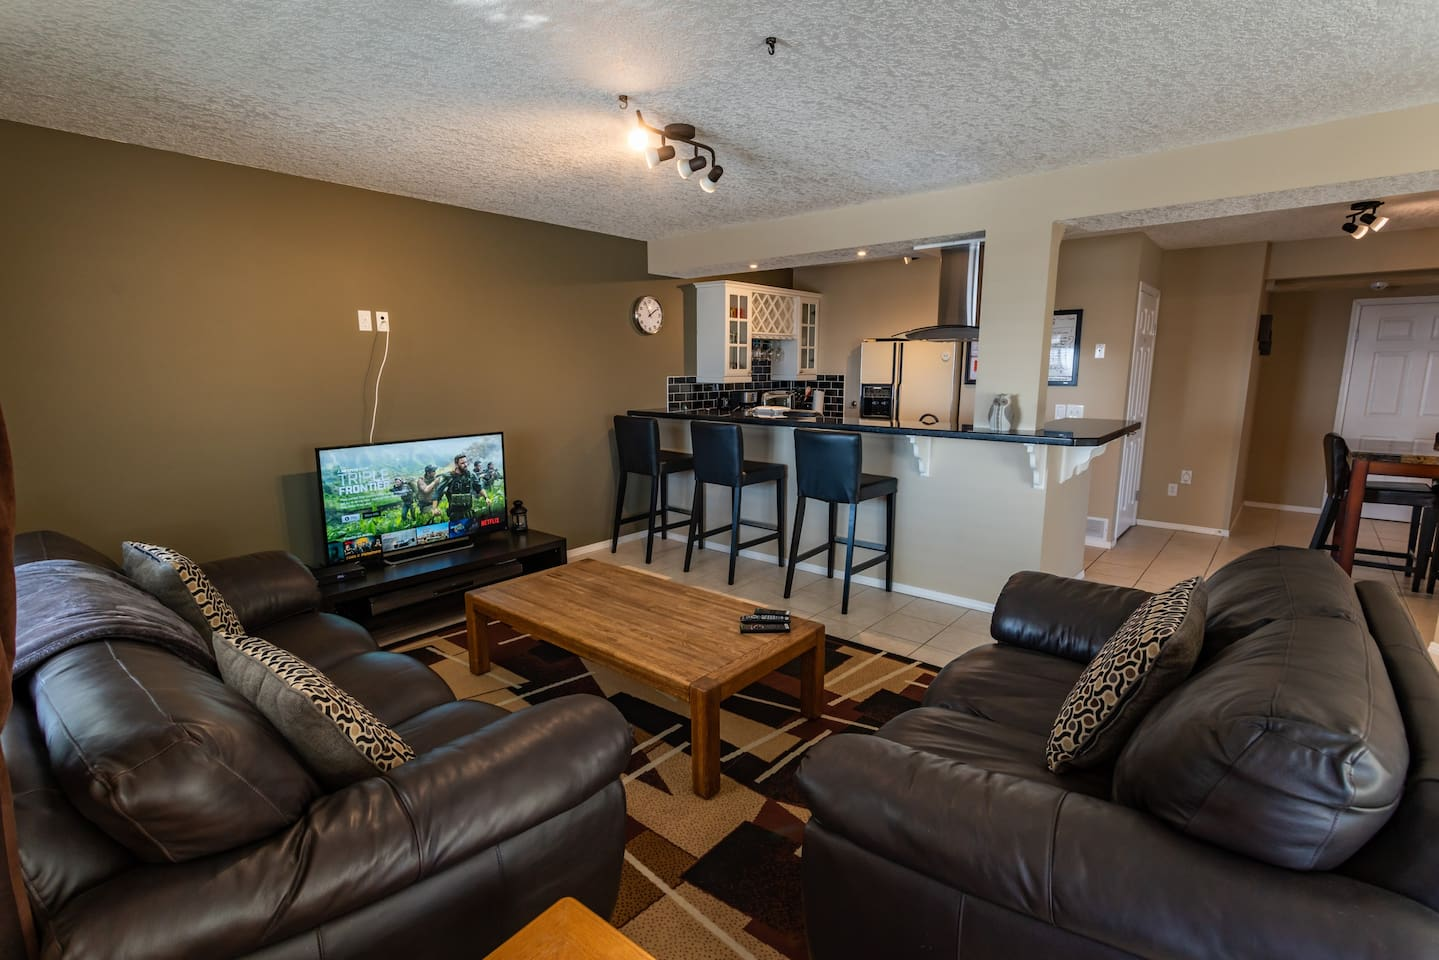 """Sit down and relax in quality leather sofas  for a movie night, watch the game or your favourite TV series marathon. The 50"""" HD SMART TV and bluetooth sound bar with subwoofer tops it off. NETFLIX is free of charge and pre loaded."""